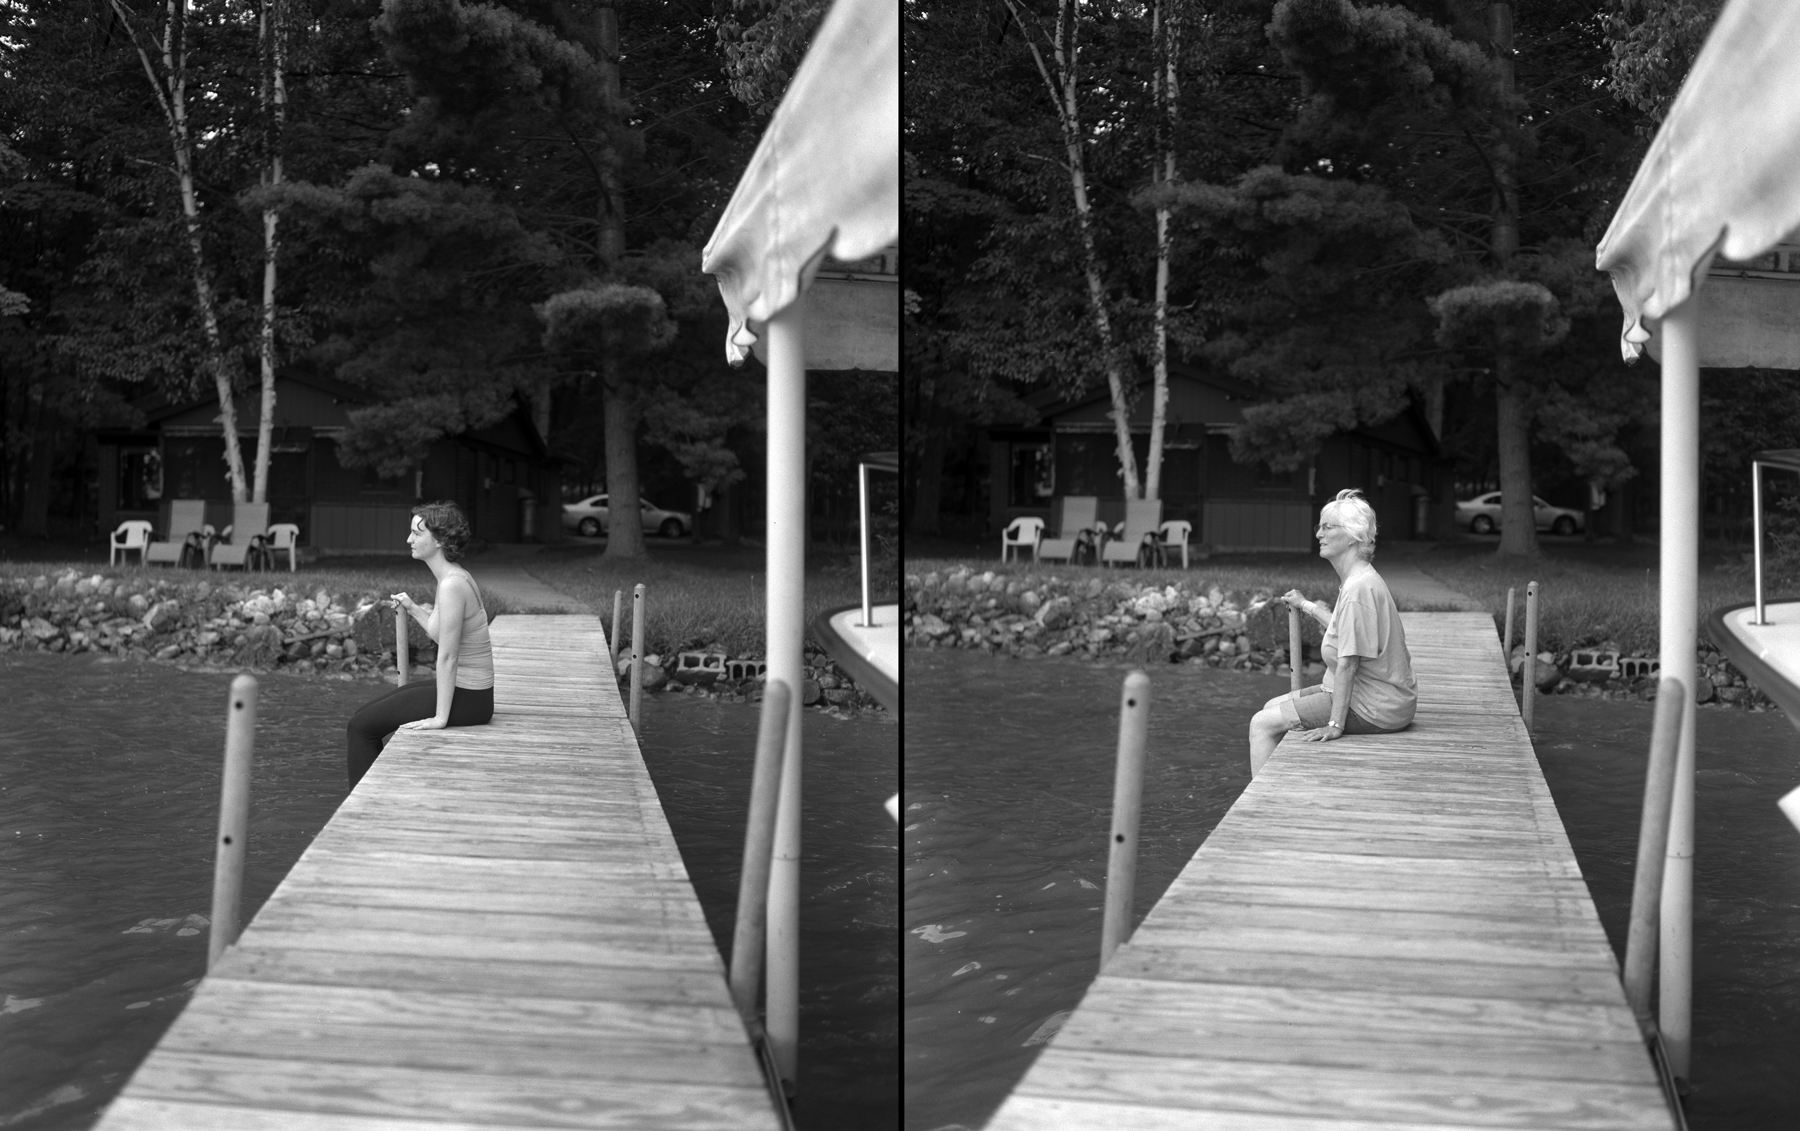 Katt Janson Merilo | Mom And Me On The Dock | Speed Graphic 135mm